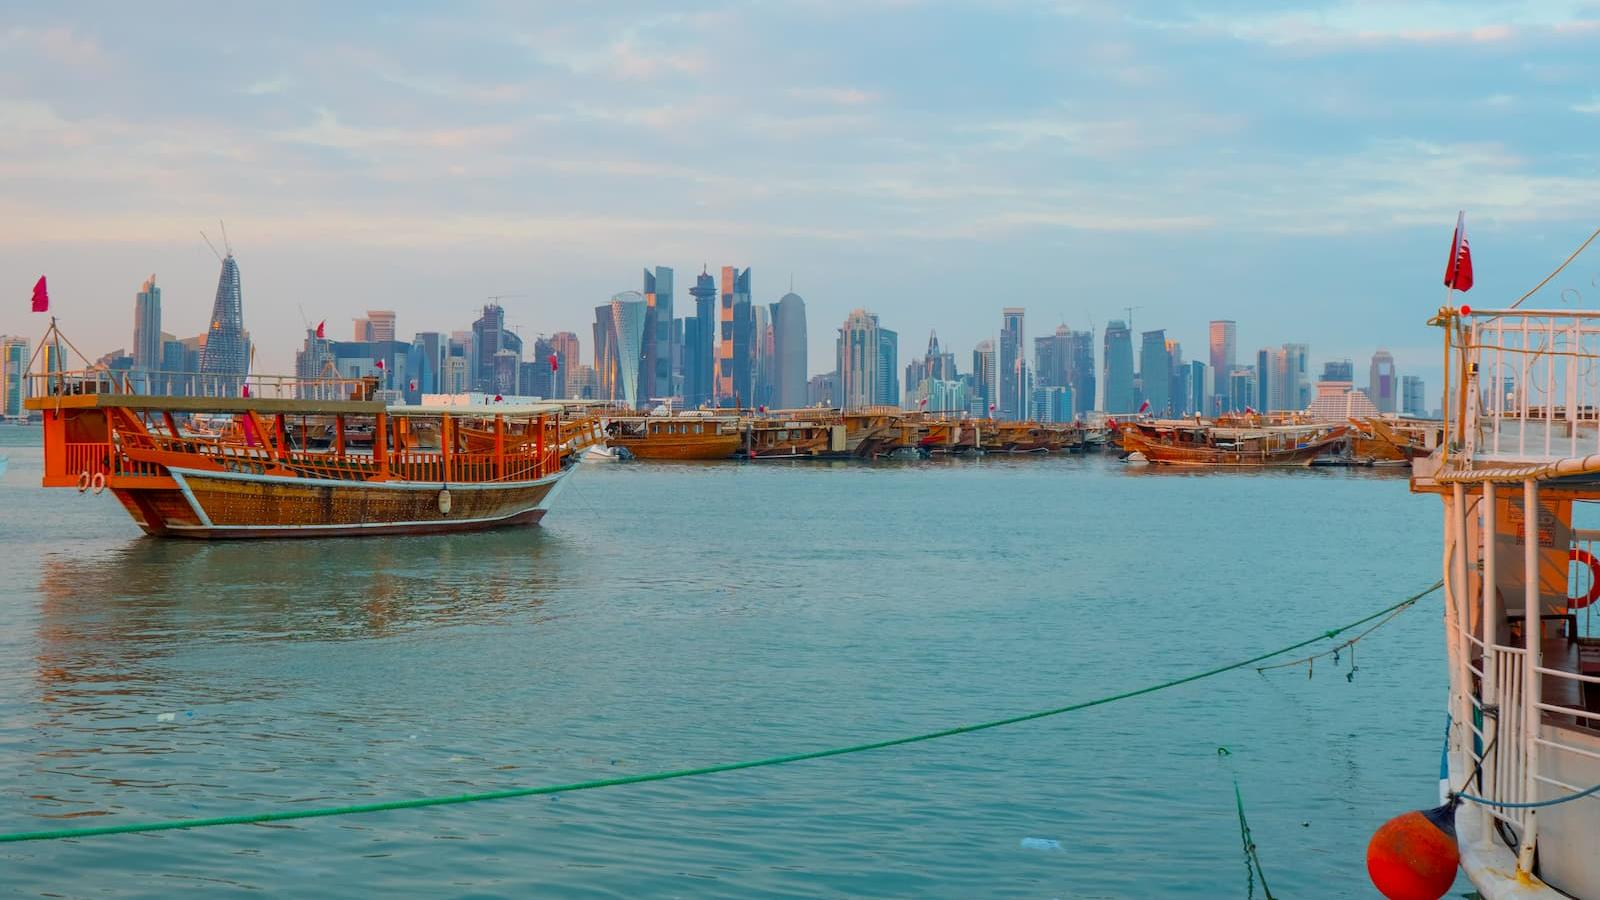 WATCH: The meaning of Qatar's name